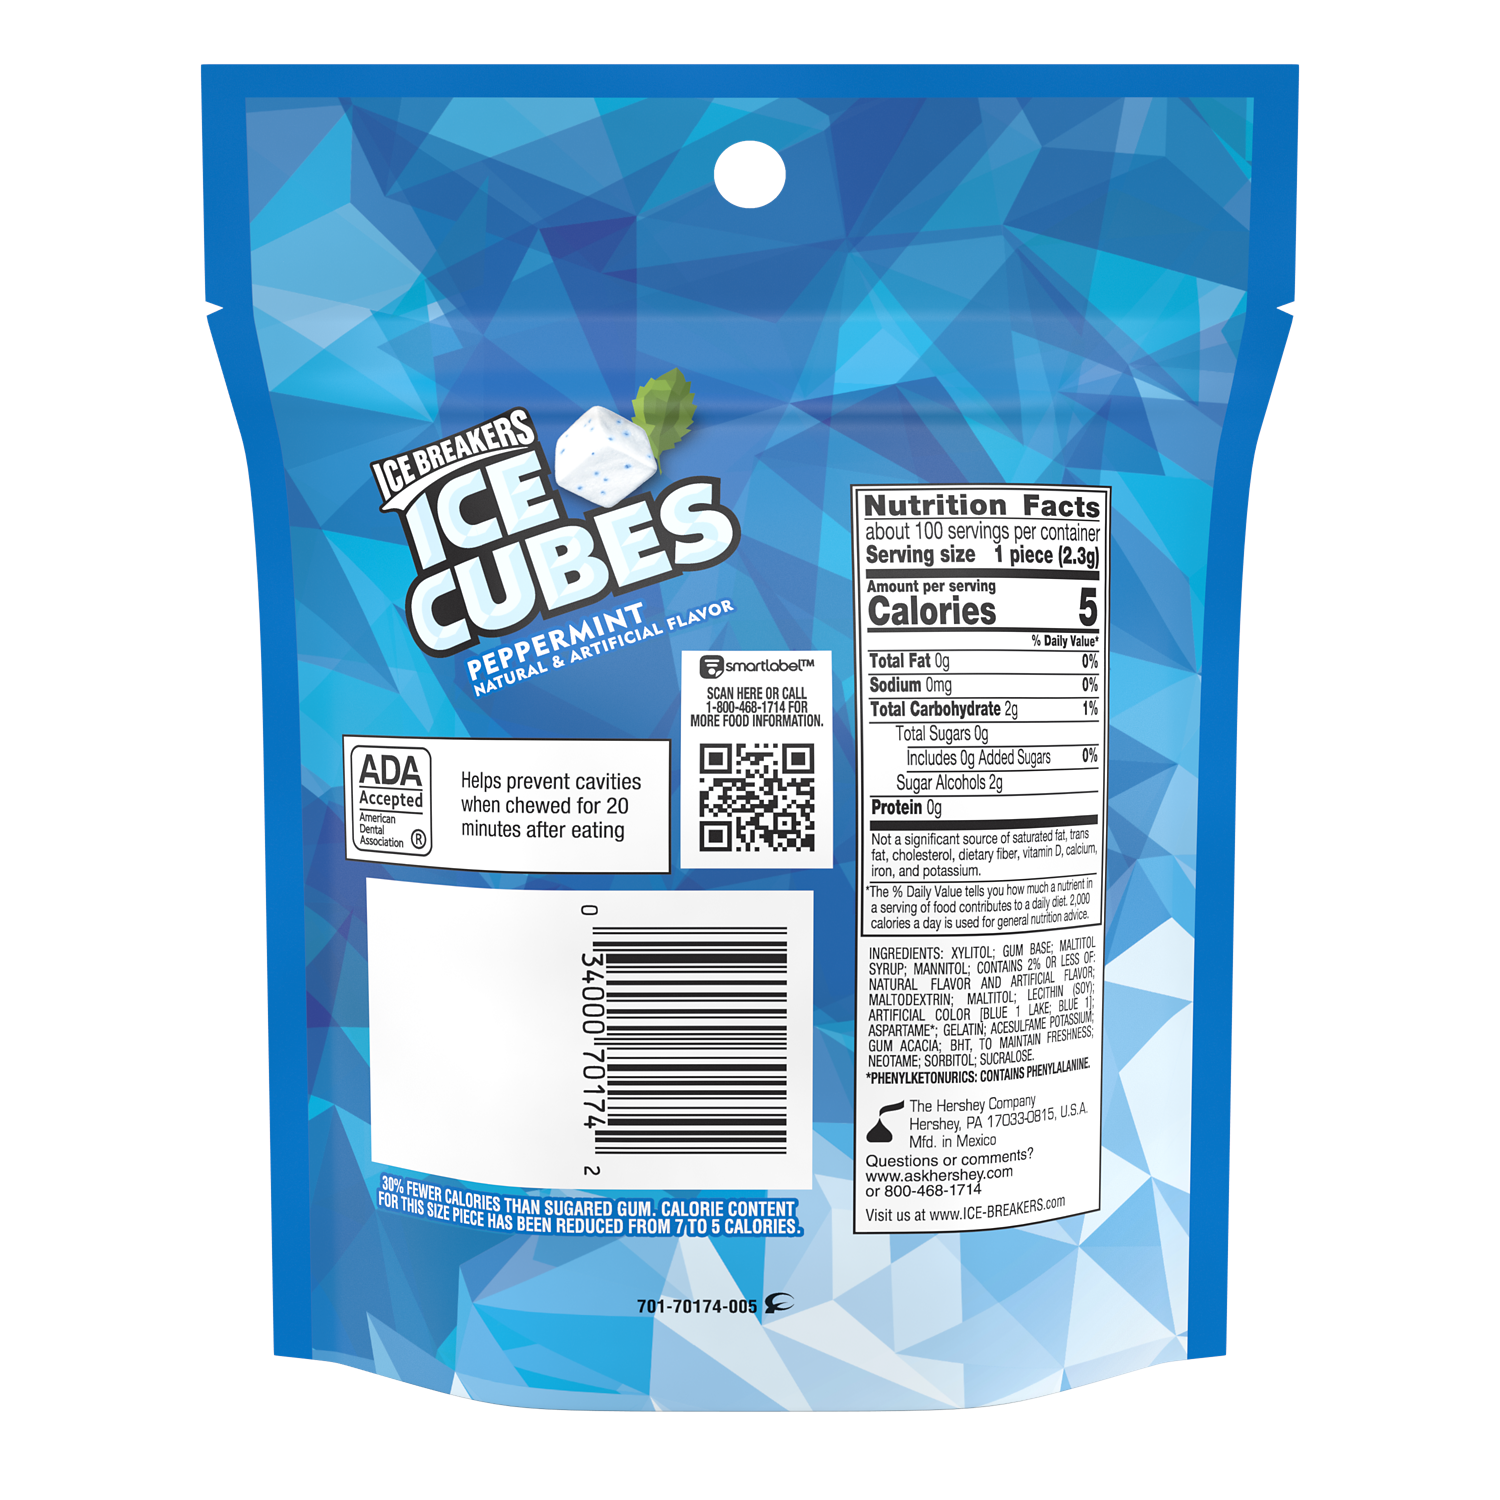 ICE BREAKERS ICE CUBES Peppermint Sugar Free Gum, 8.11 oz bag, 100 pieces - Back of Package